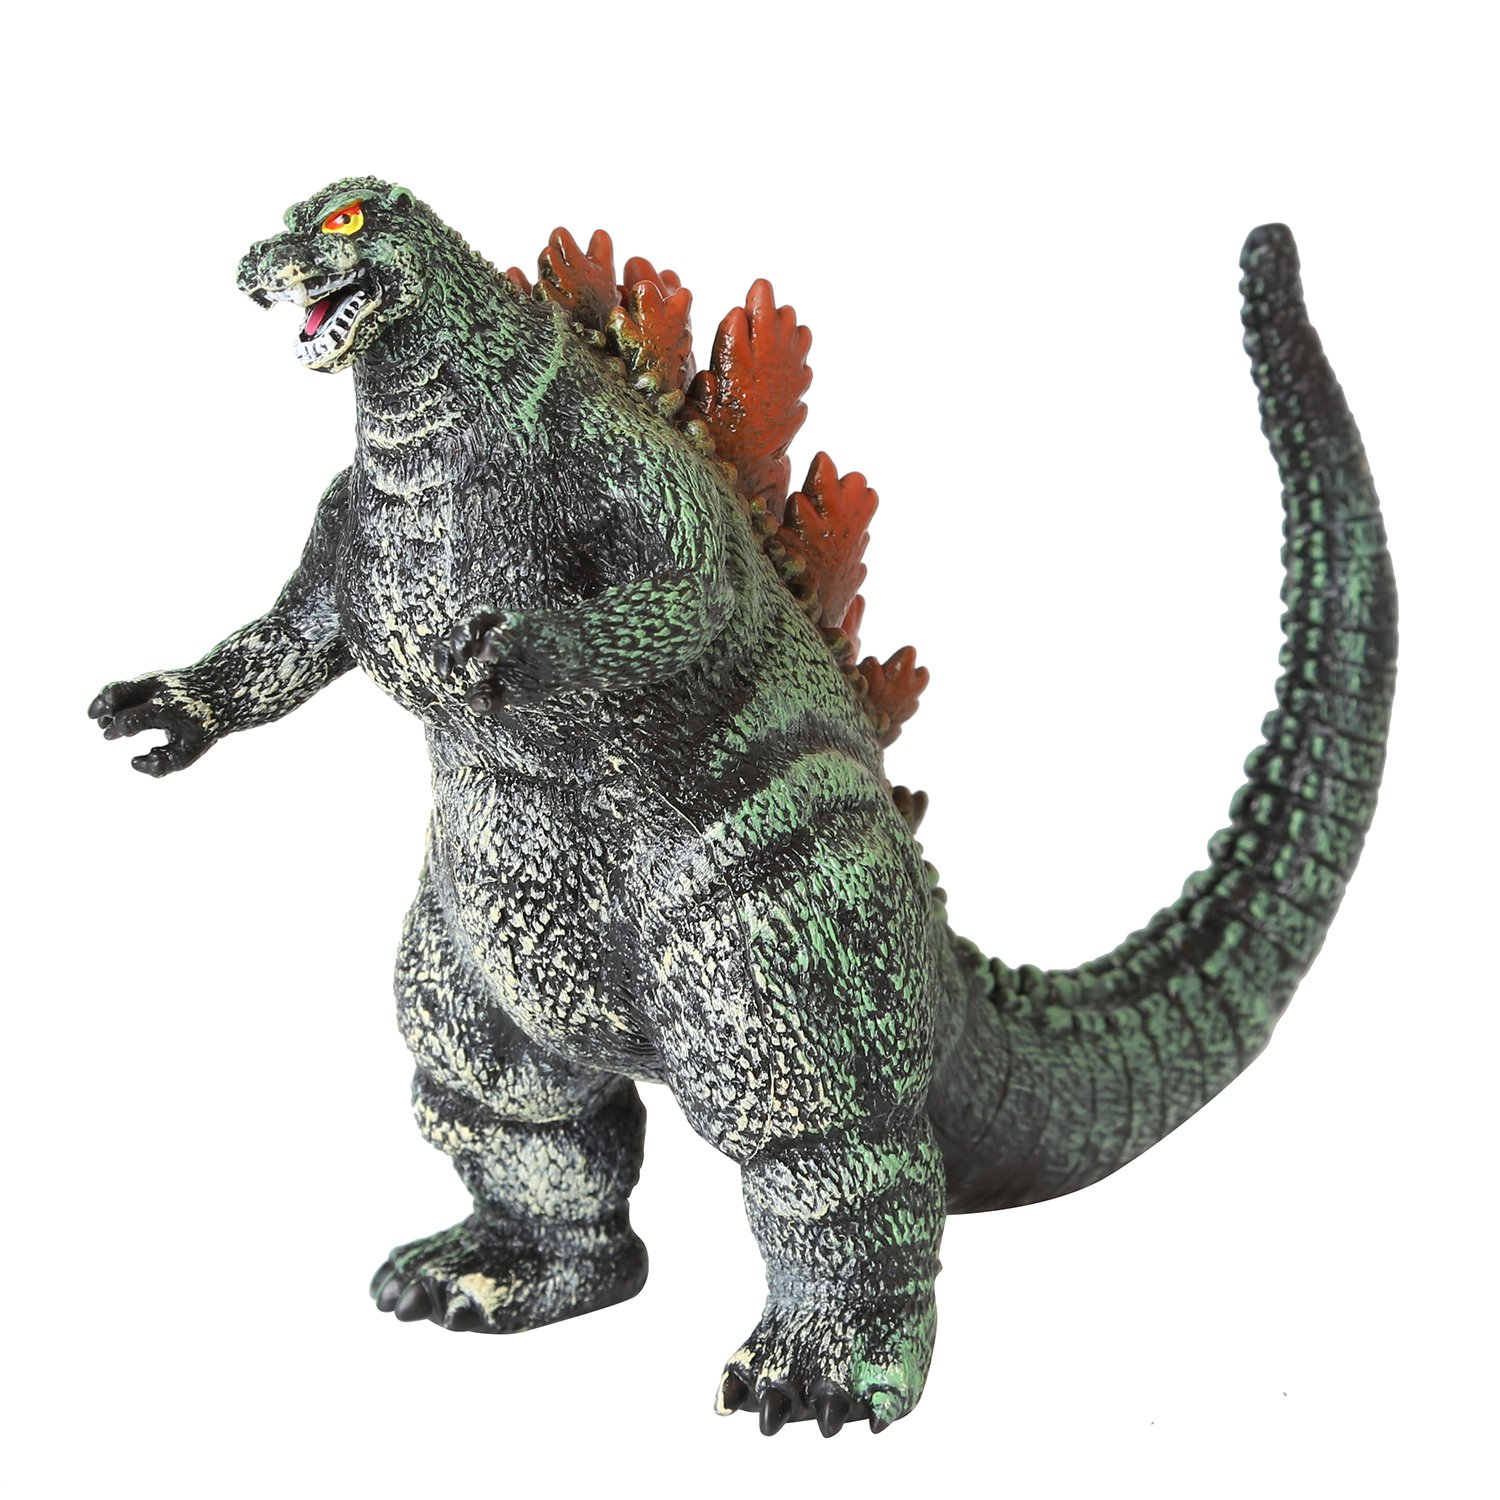 6 7 3.5 Educational Plastic Dinosaur Model Action Figures Toy Vinyl Plastic Godzilla Dinosaur Model for Kids(Gojirasaurus) Chenghai